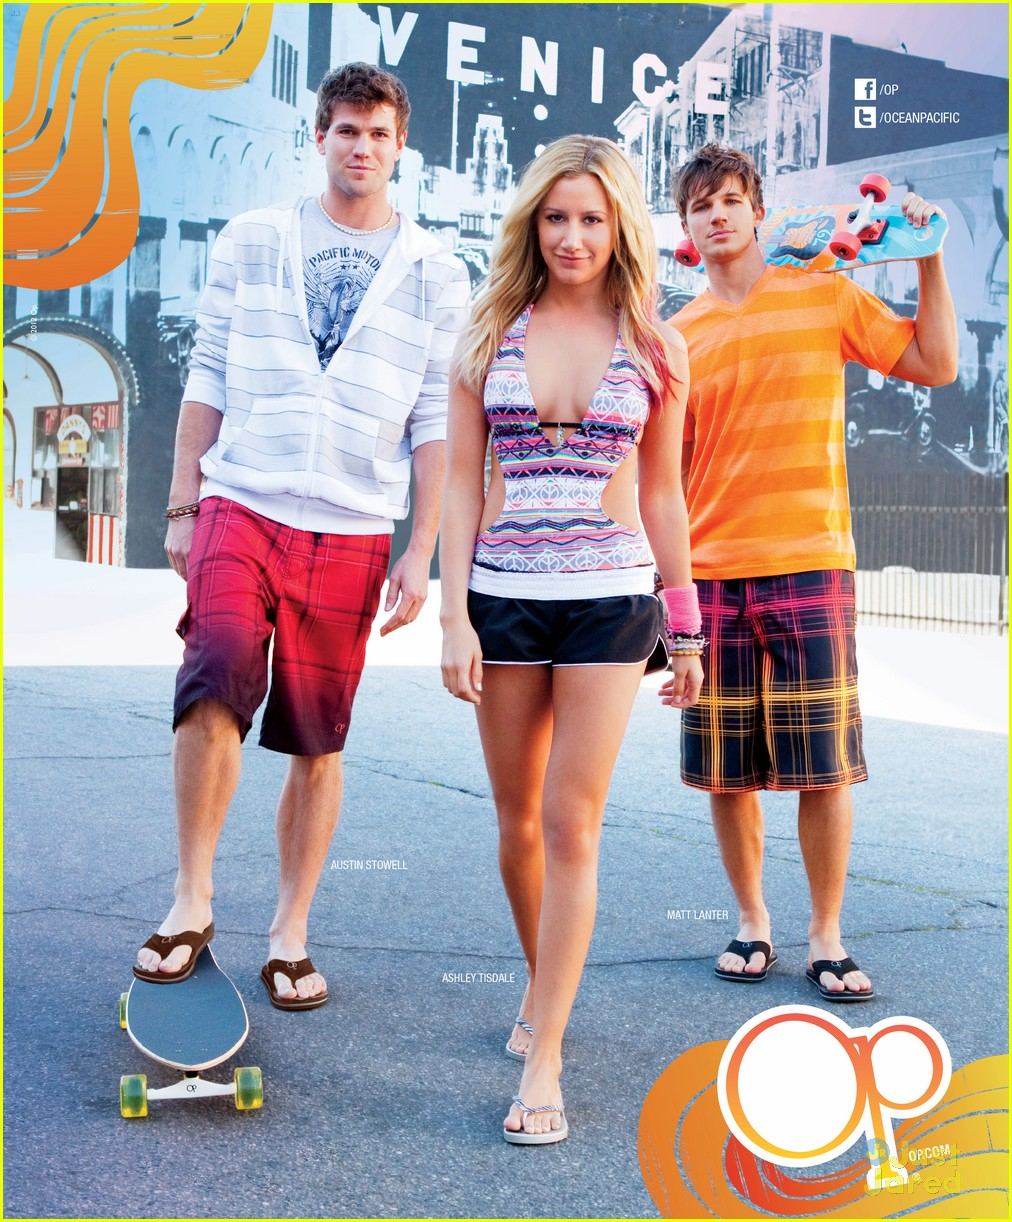 ashley sarah matt austin op campaign 01